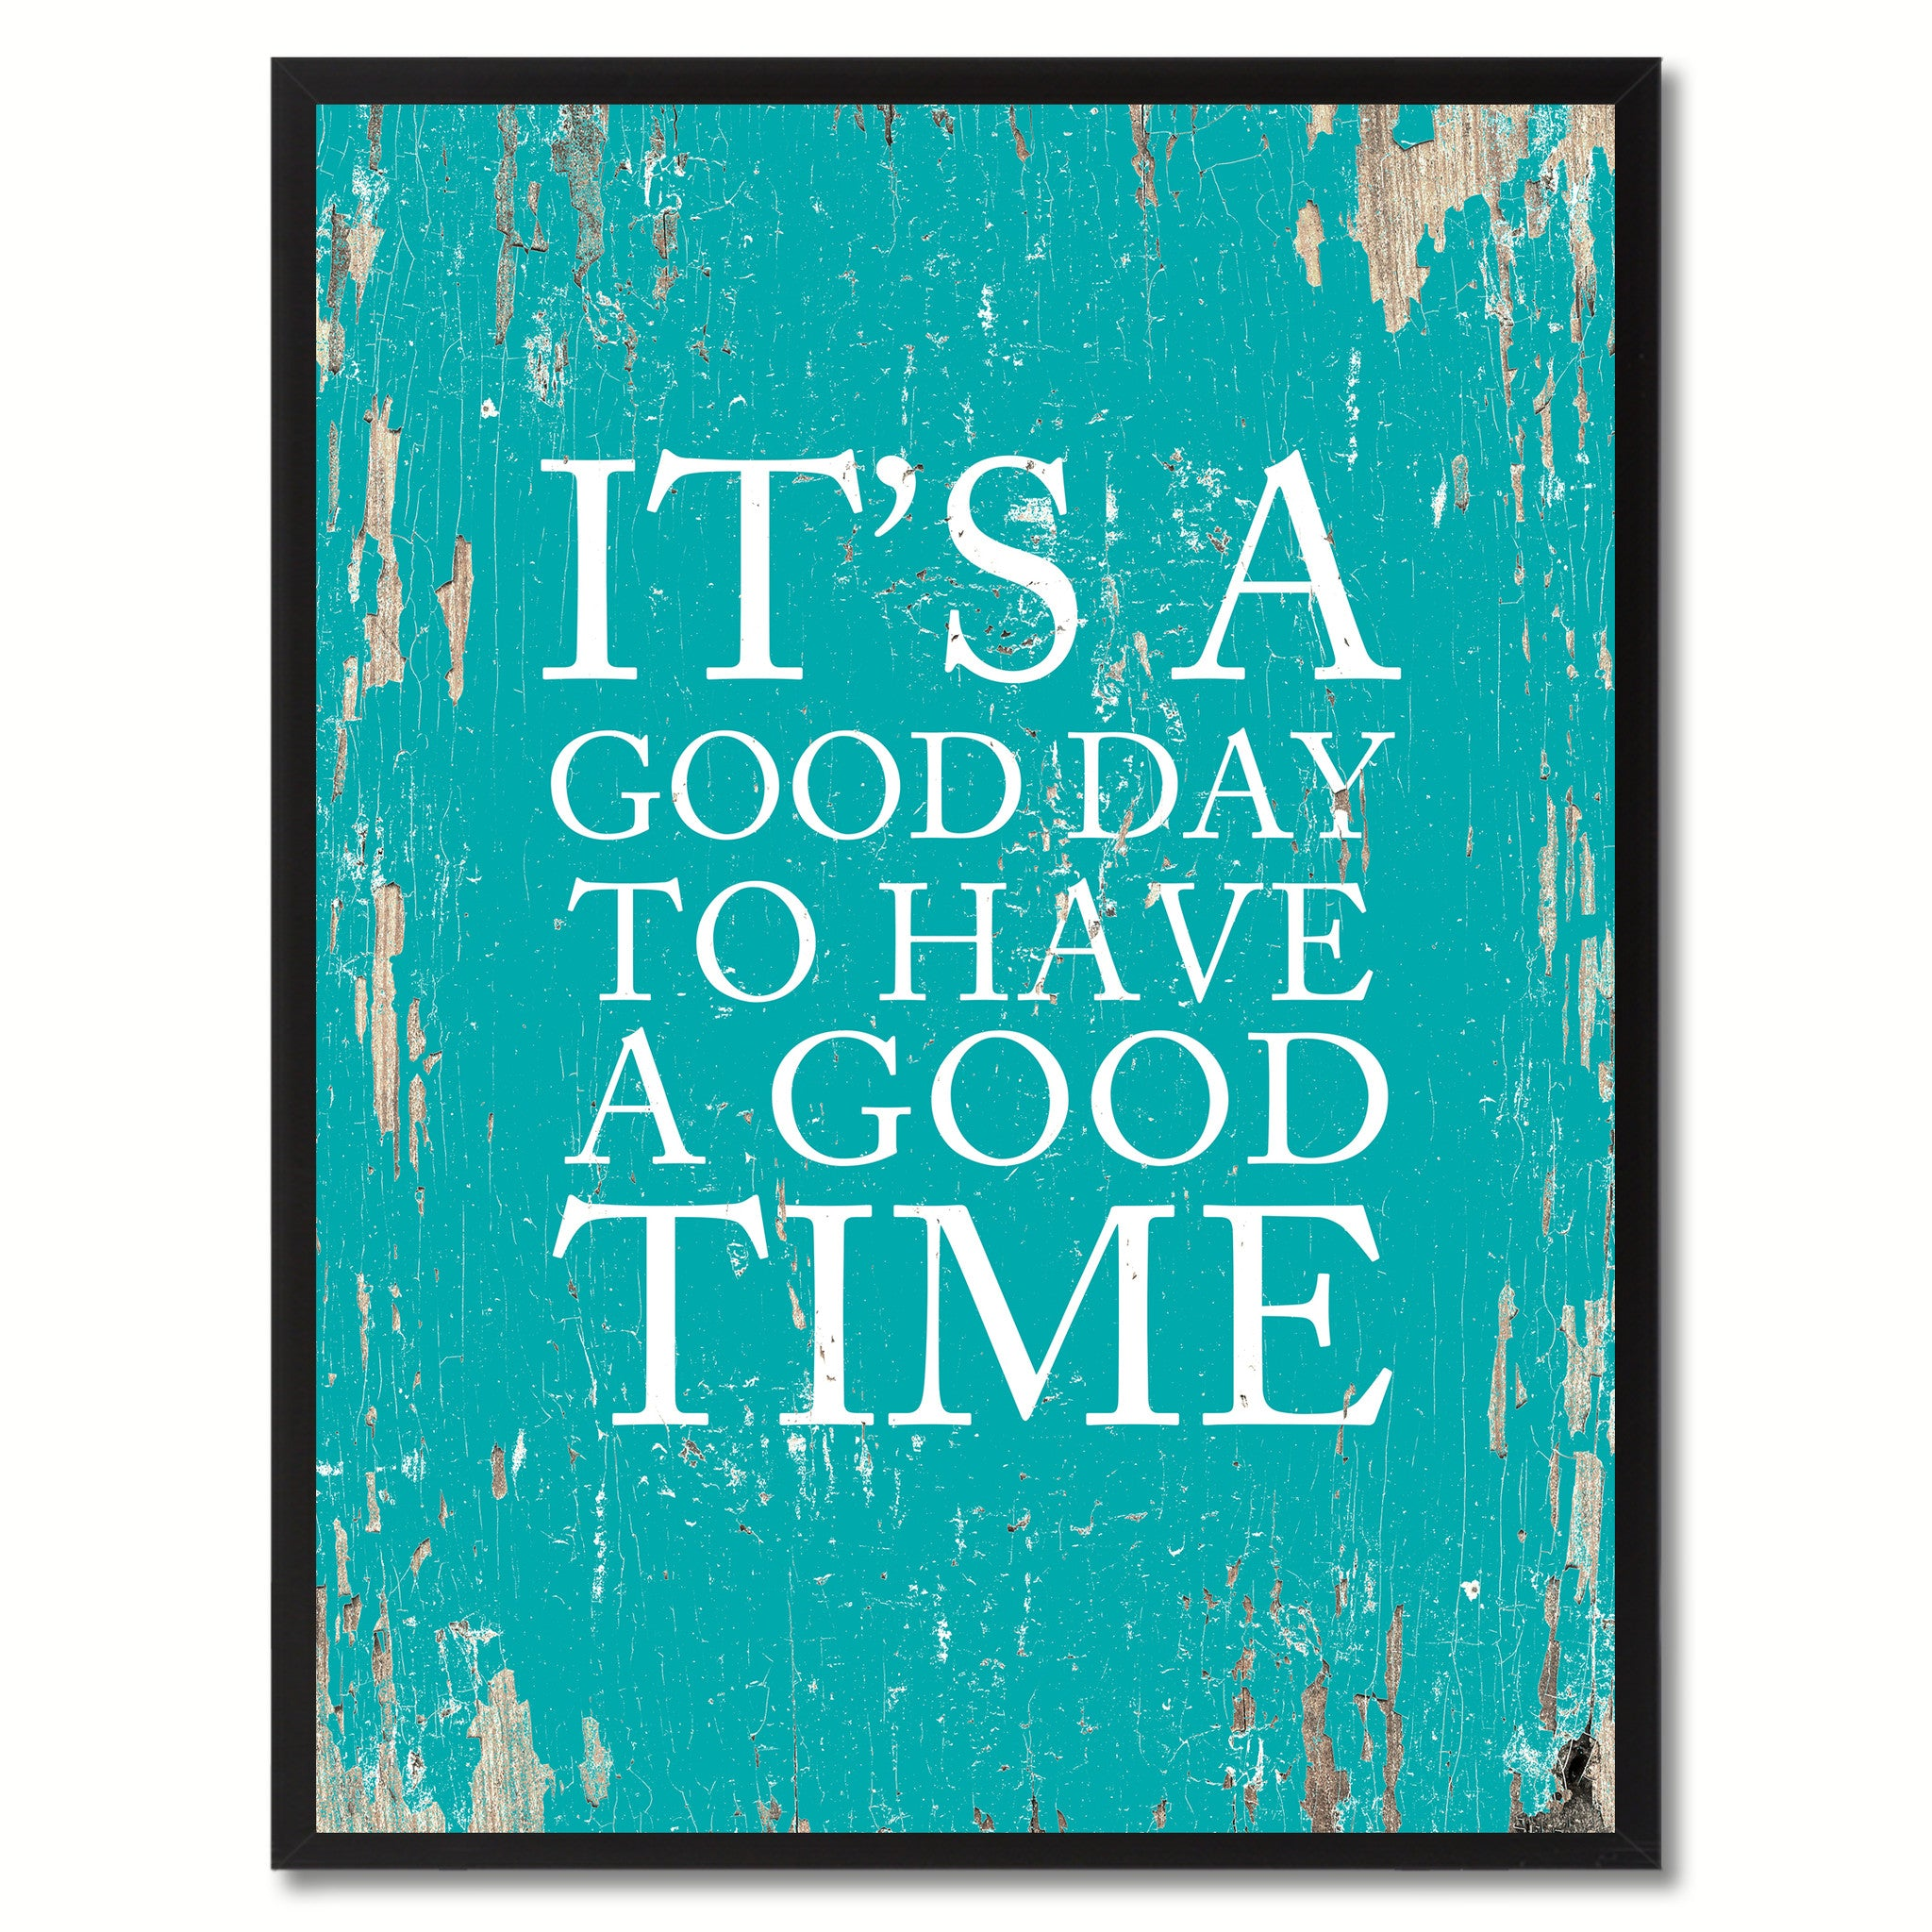 It's A Good Day To Have A Good Time Saying Canvas Print, Black Picture Frame Home Decor Wall Art Gifts